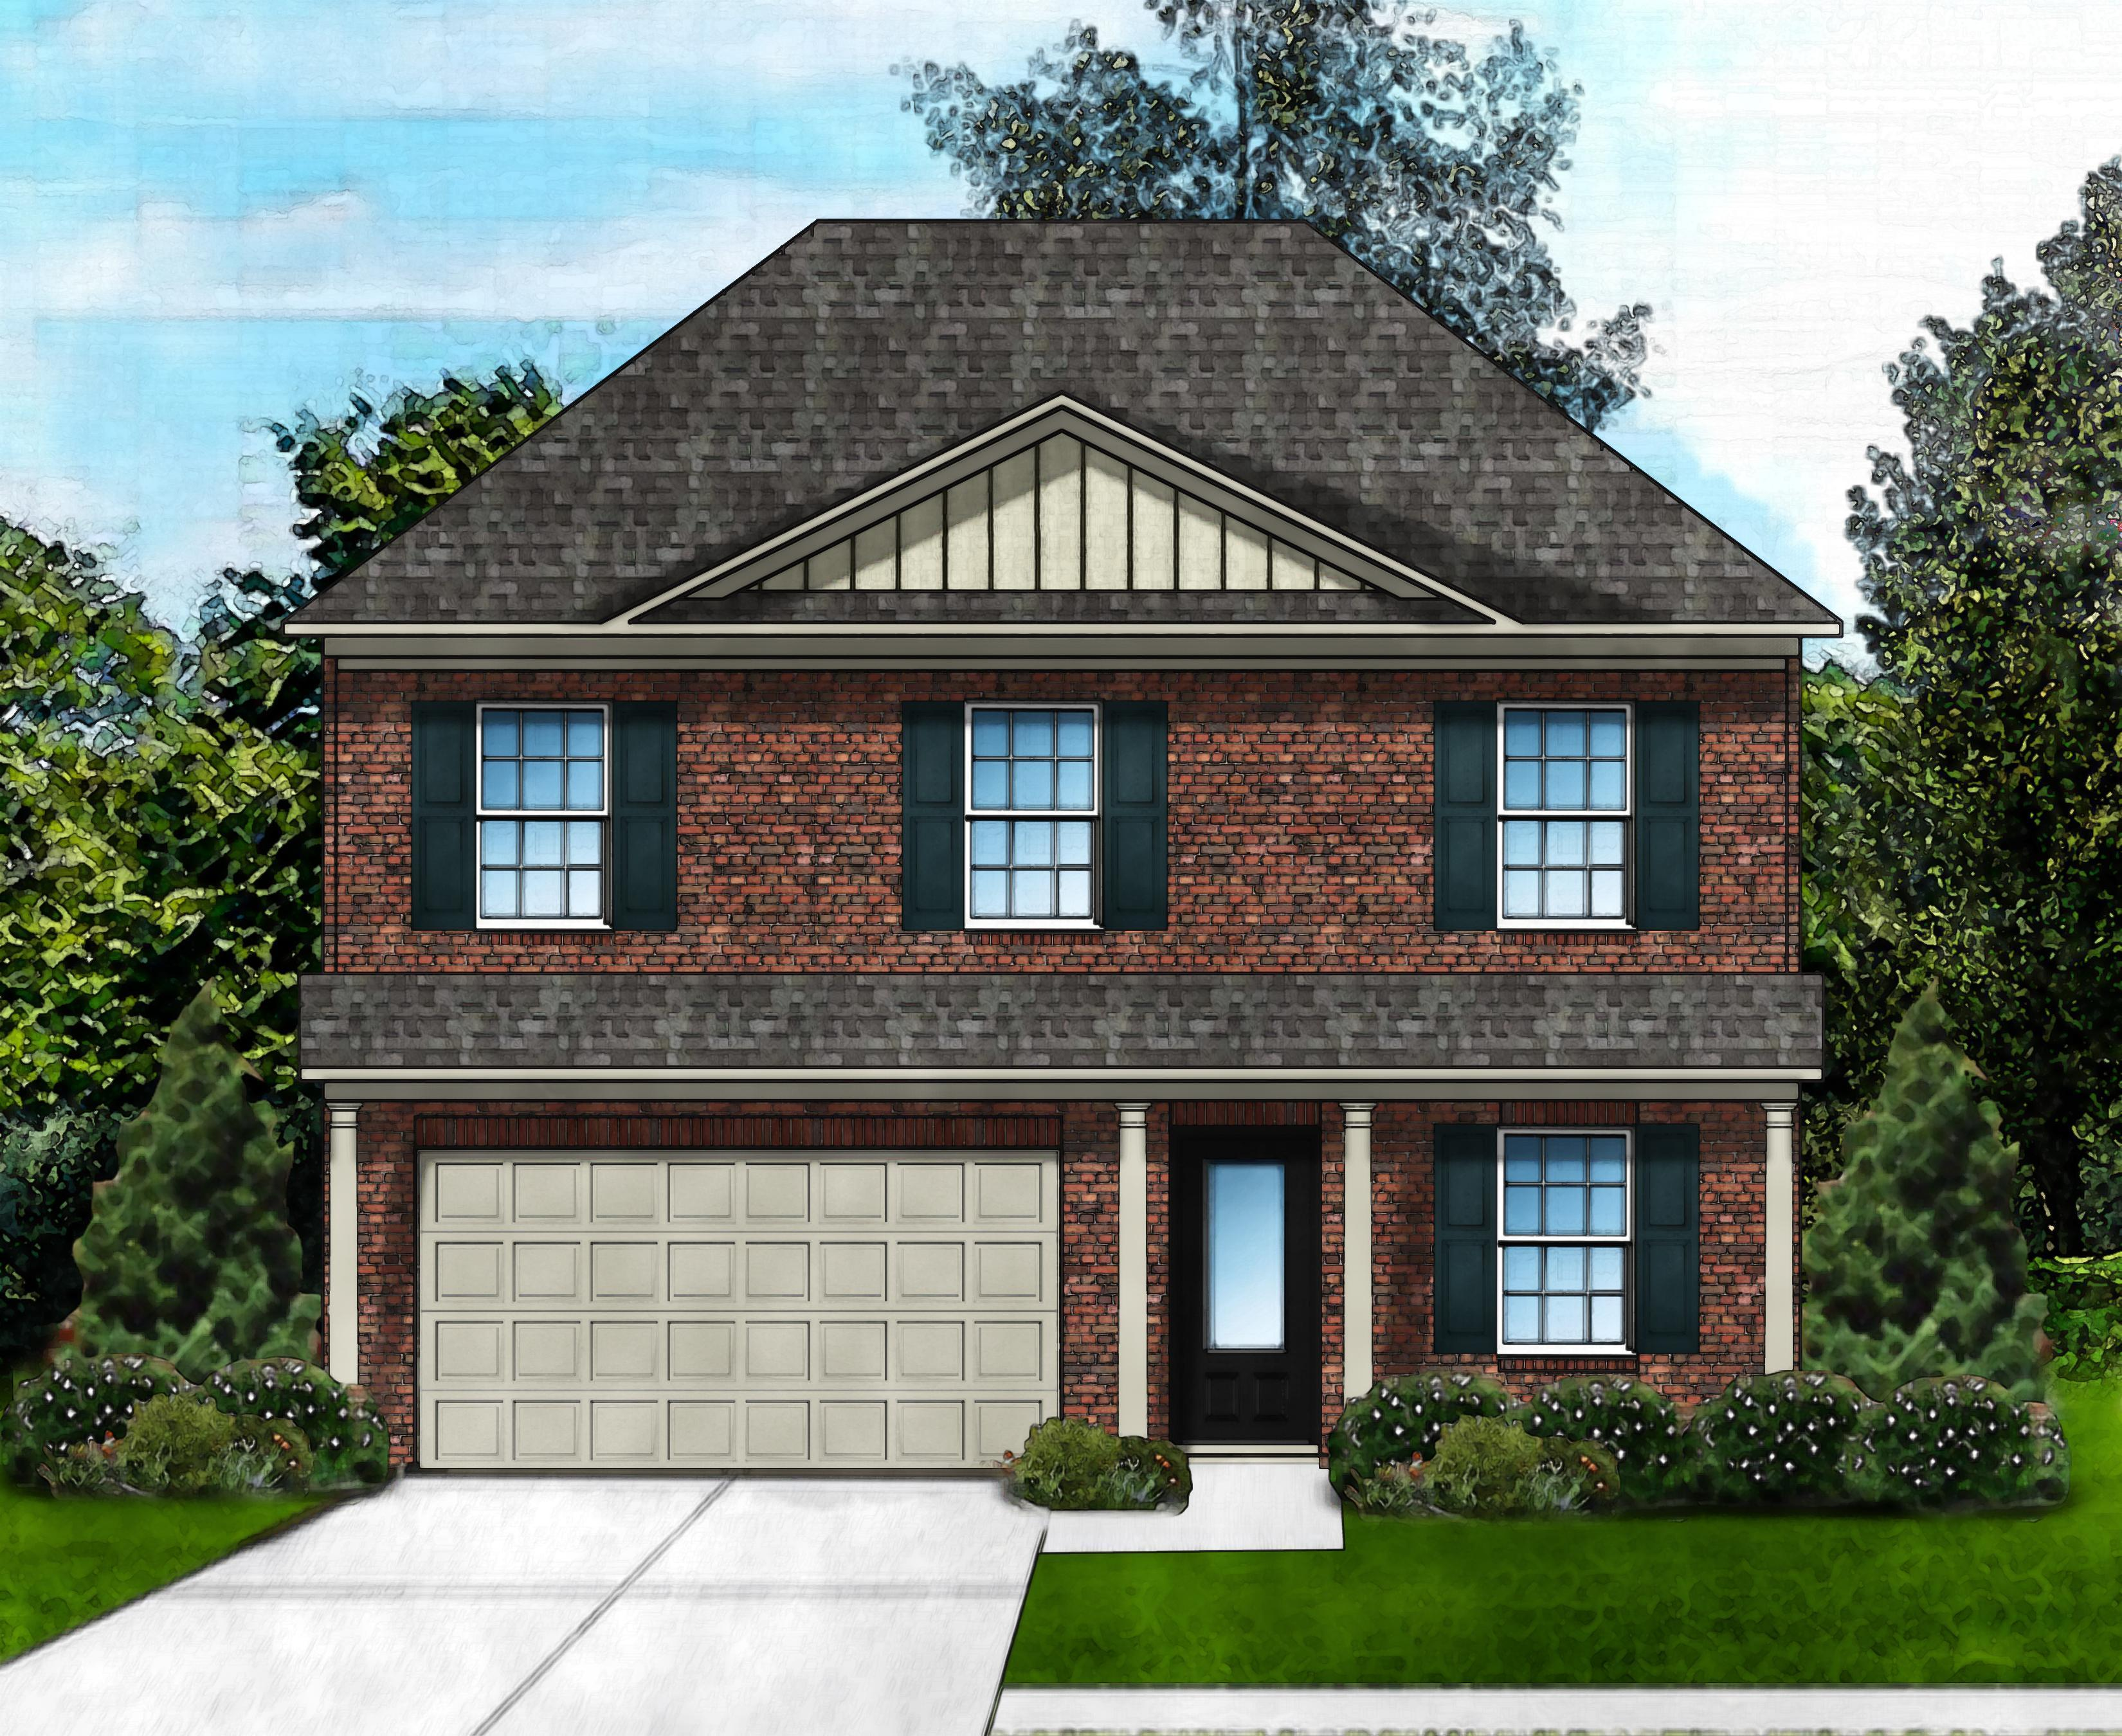 Exterior featured in the Bentgrass E2 (Brick Front) By Great Southern Homes in Florence, SC